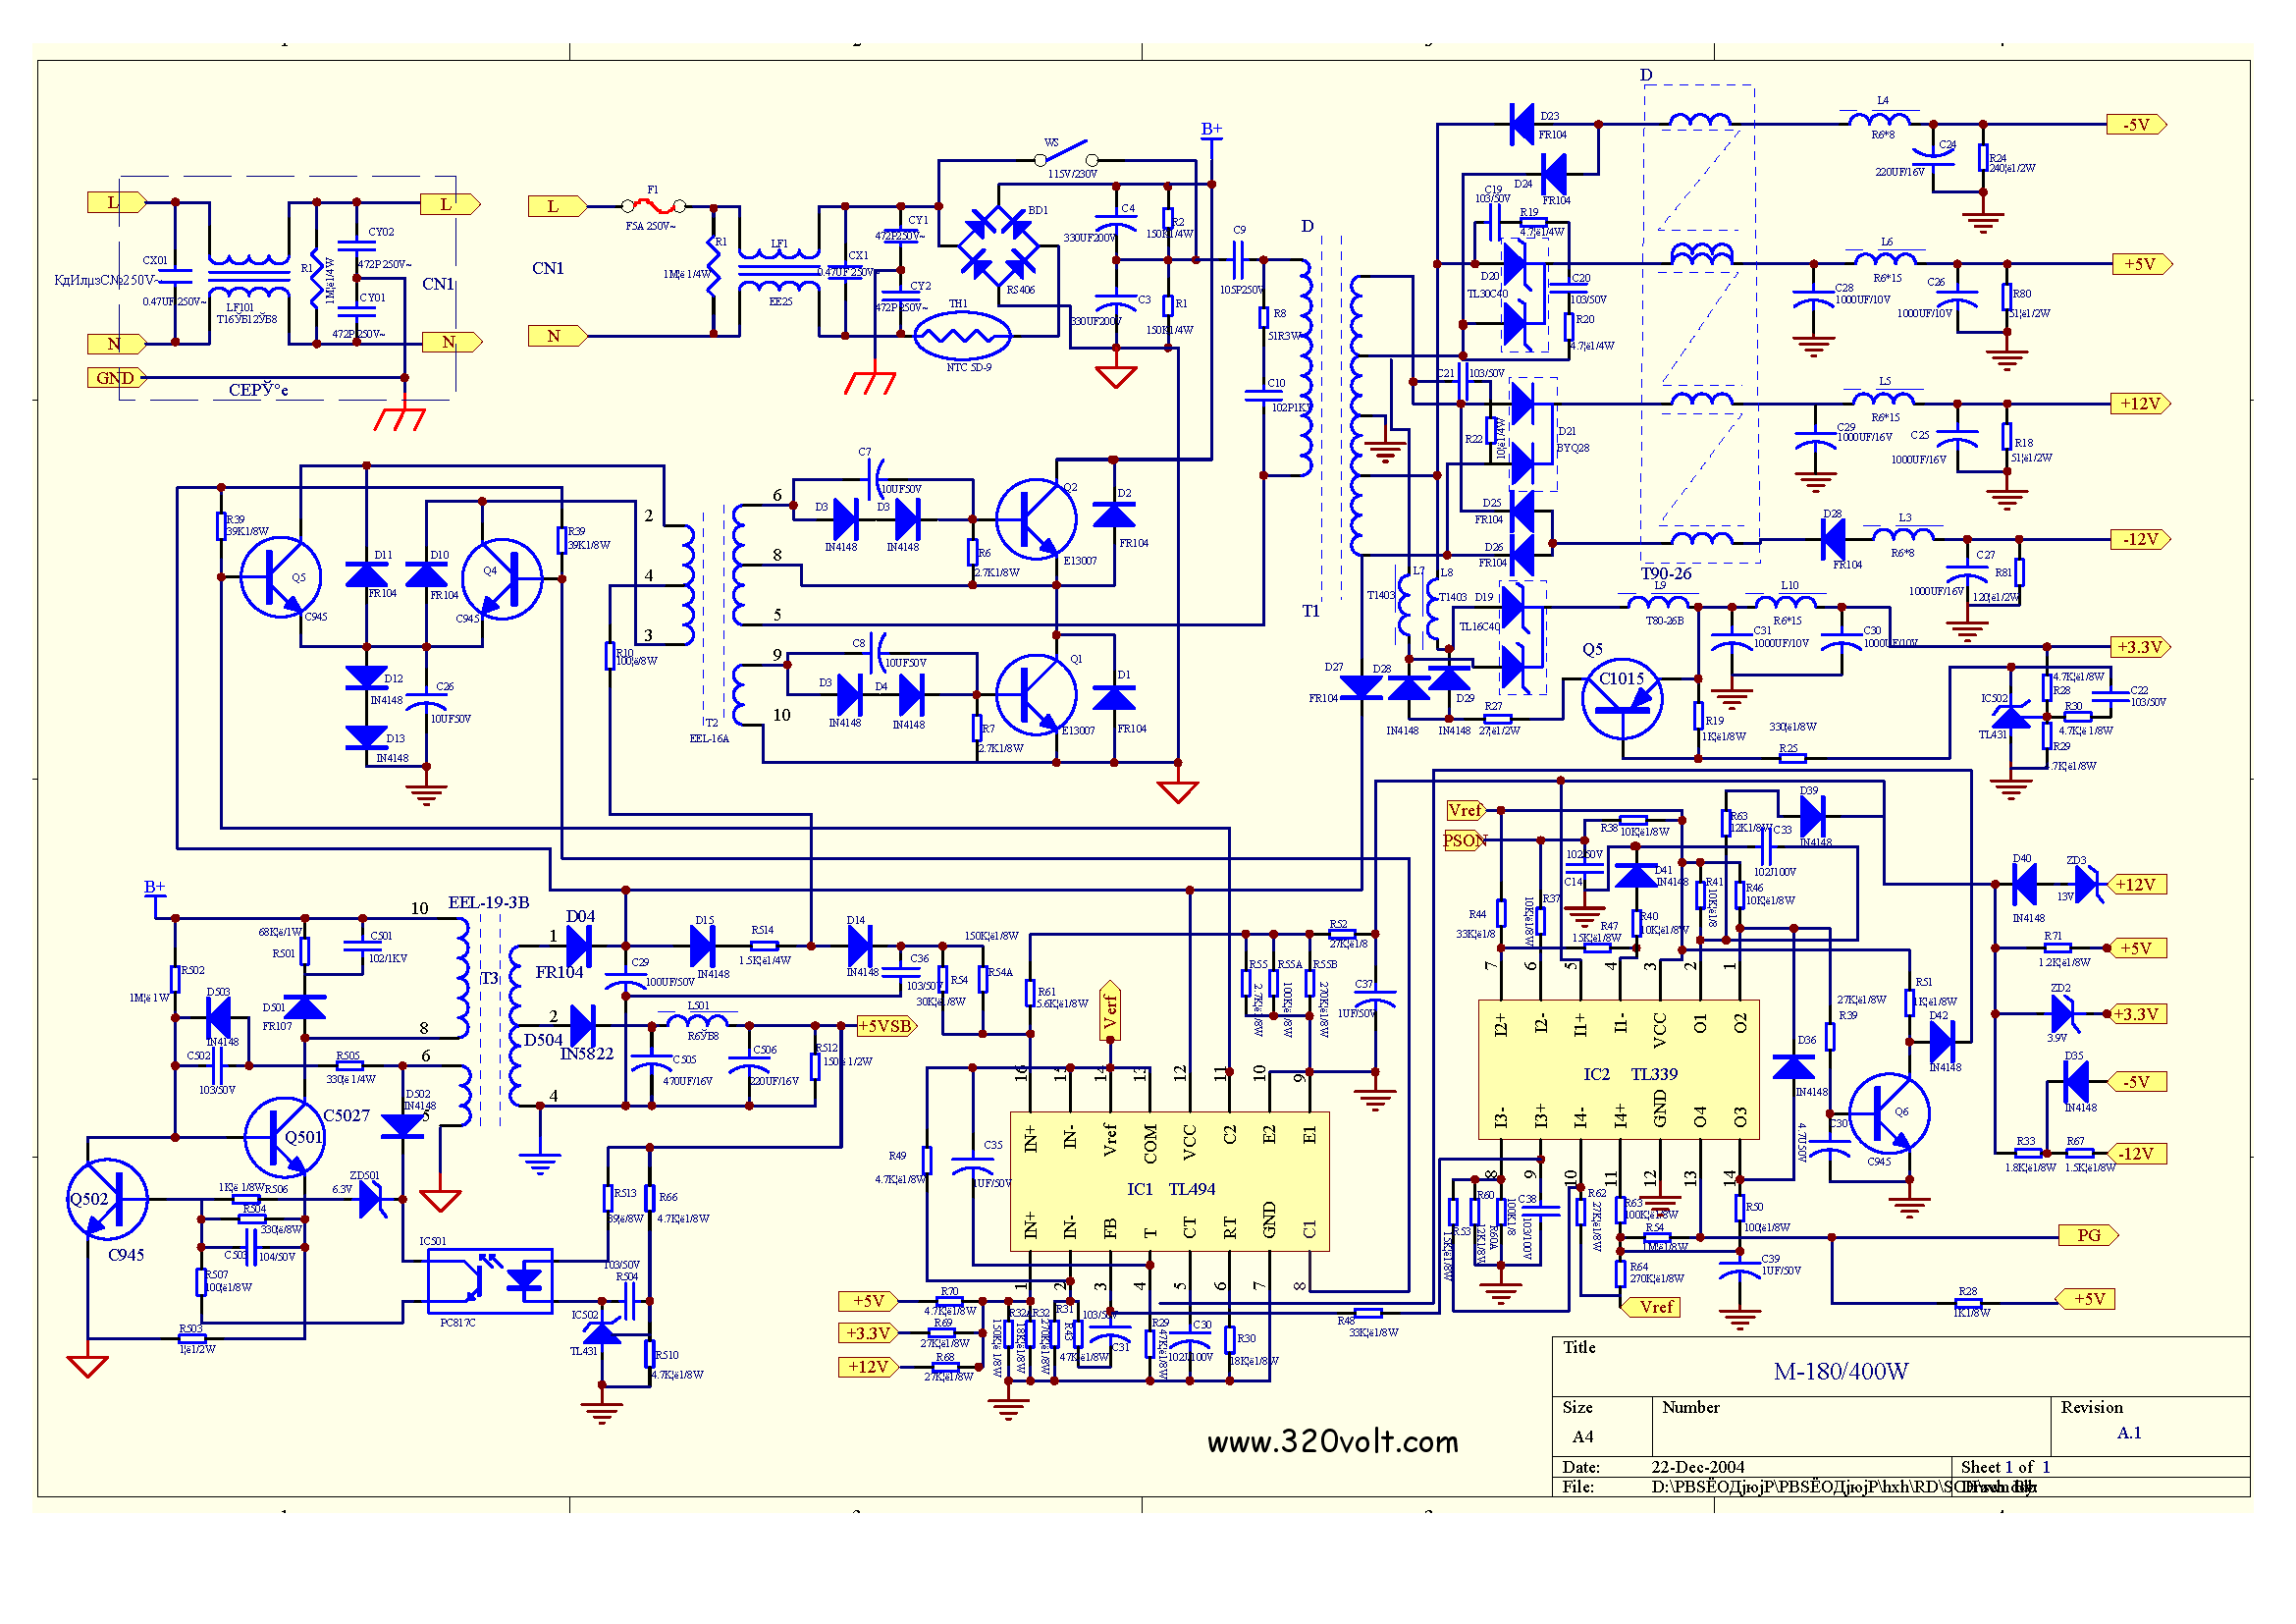 Atx Wiring Diagram Library Welding Circuit Power Supply Schematic